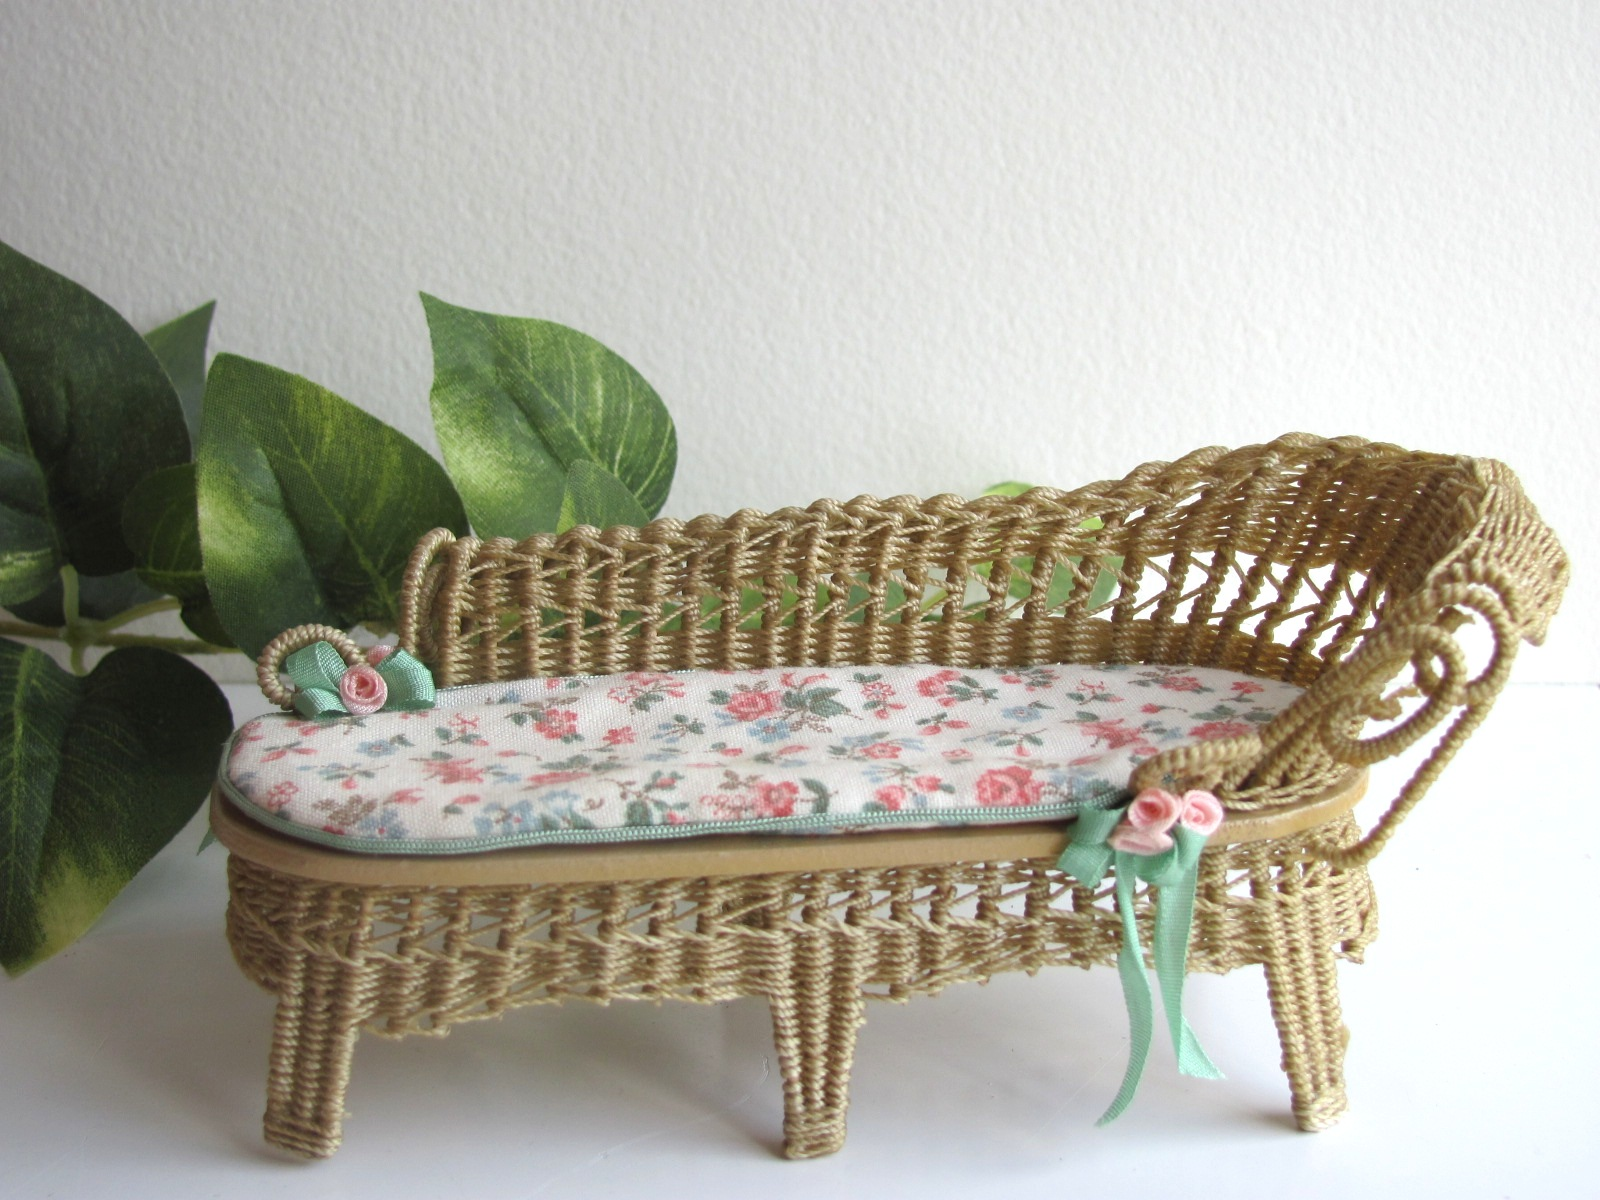 Country Cottage Chic Wicker Chaise Lounge 1/12 Miniature Dollhouse Garden Chair or Seaside Beach : wicker chaise lounge chair - Sectionals, Sofas & Couches